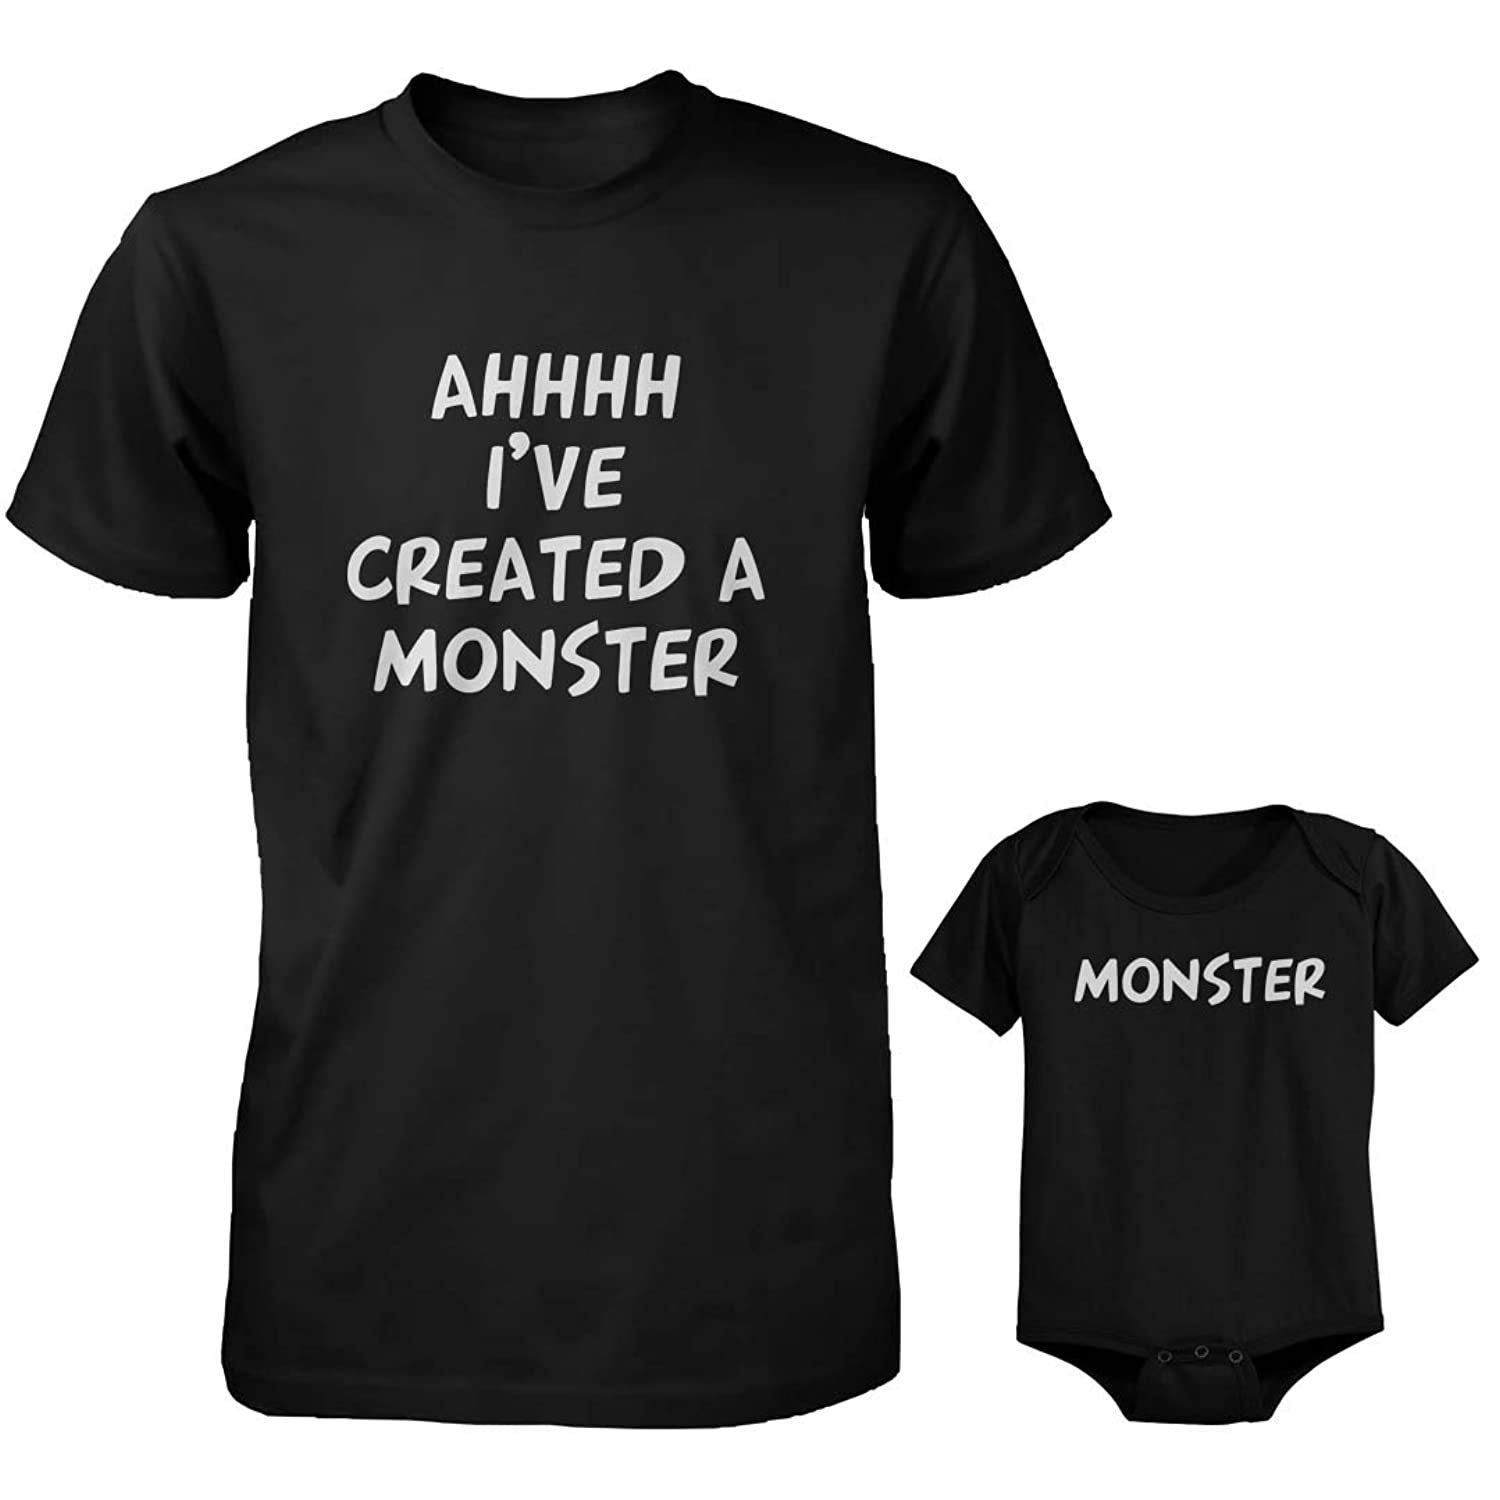 Black t shirt for babies - Daddy And Baby Matching T Shirt And Onesie Set Ahhh I Ve Created